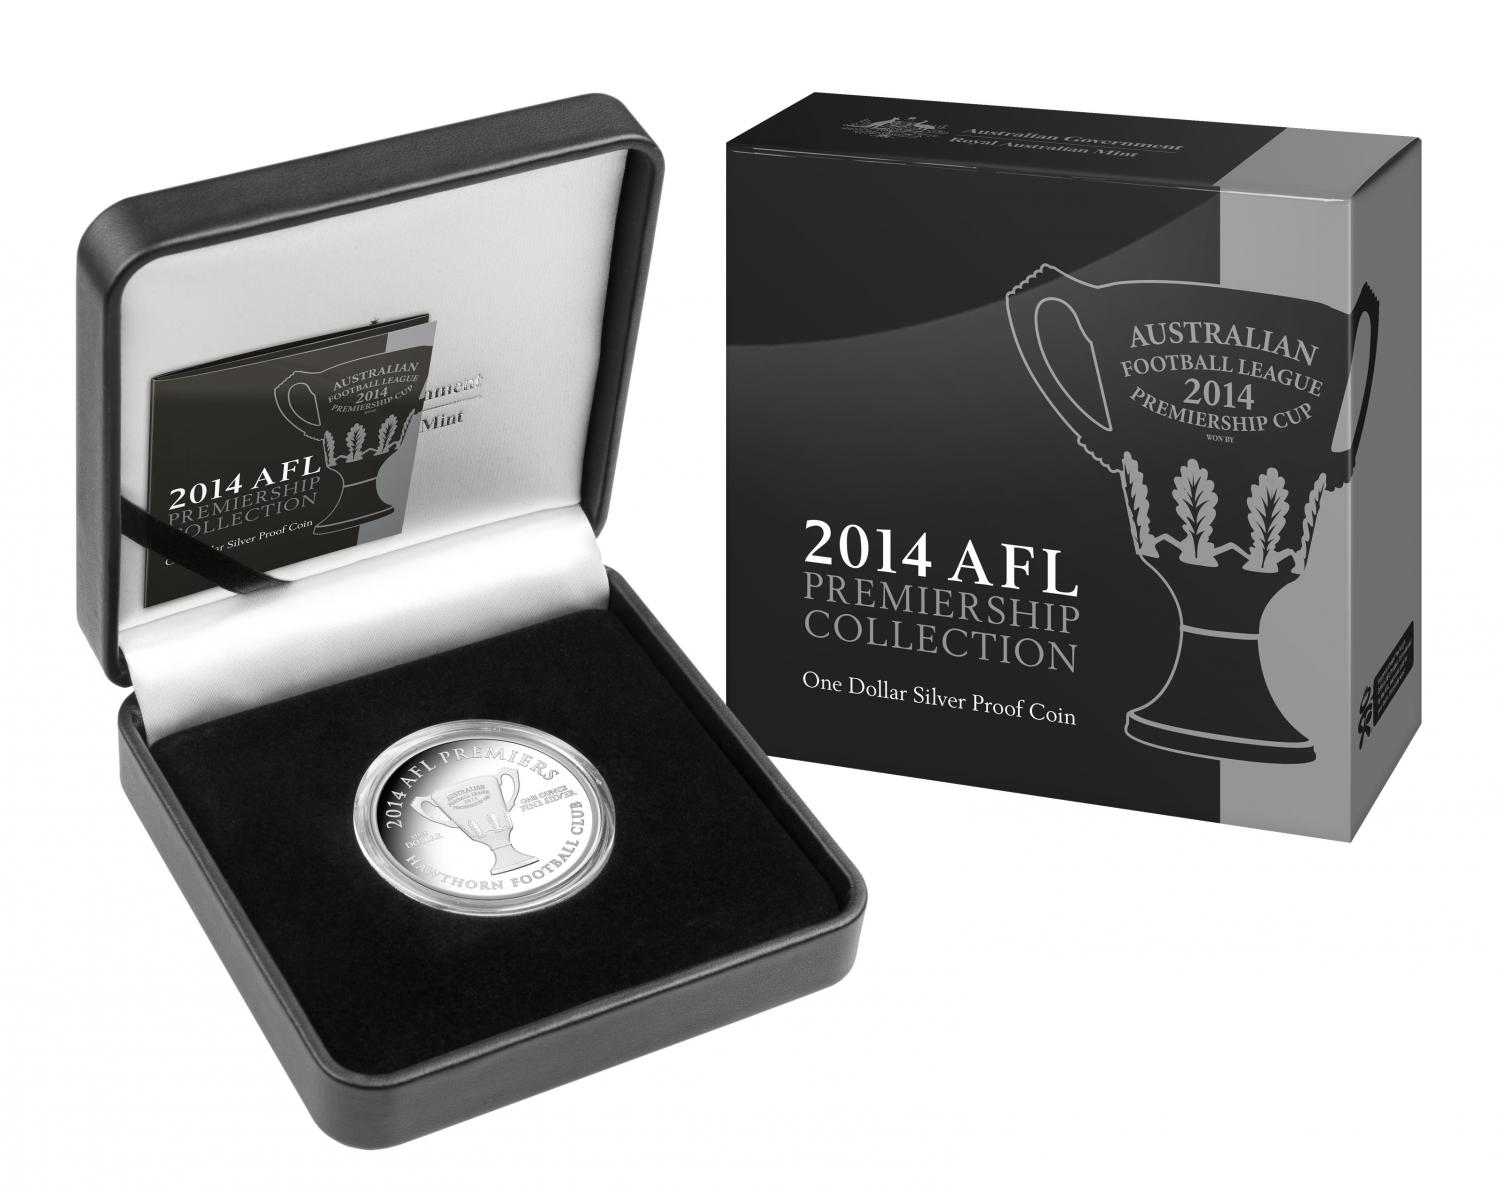 Thumbnail for 2014 AFL Premiership Cup 1oz One Dollar Silver Proof Coin